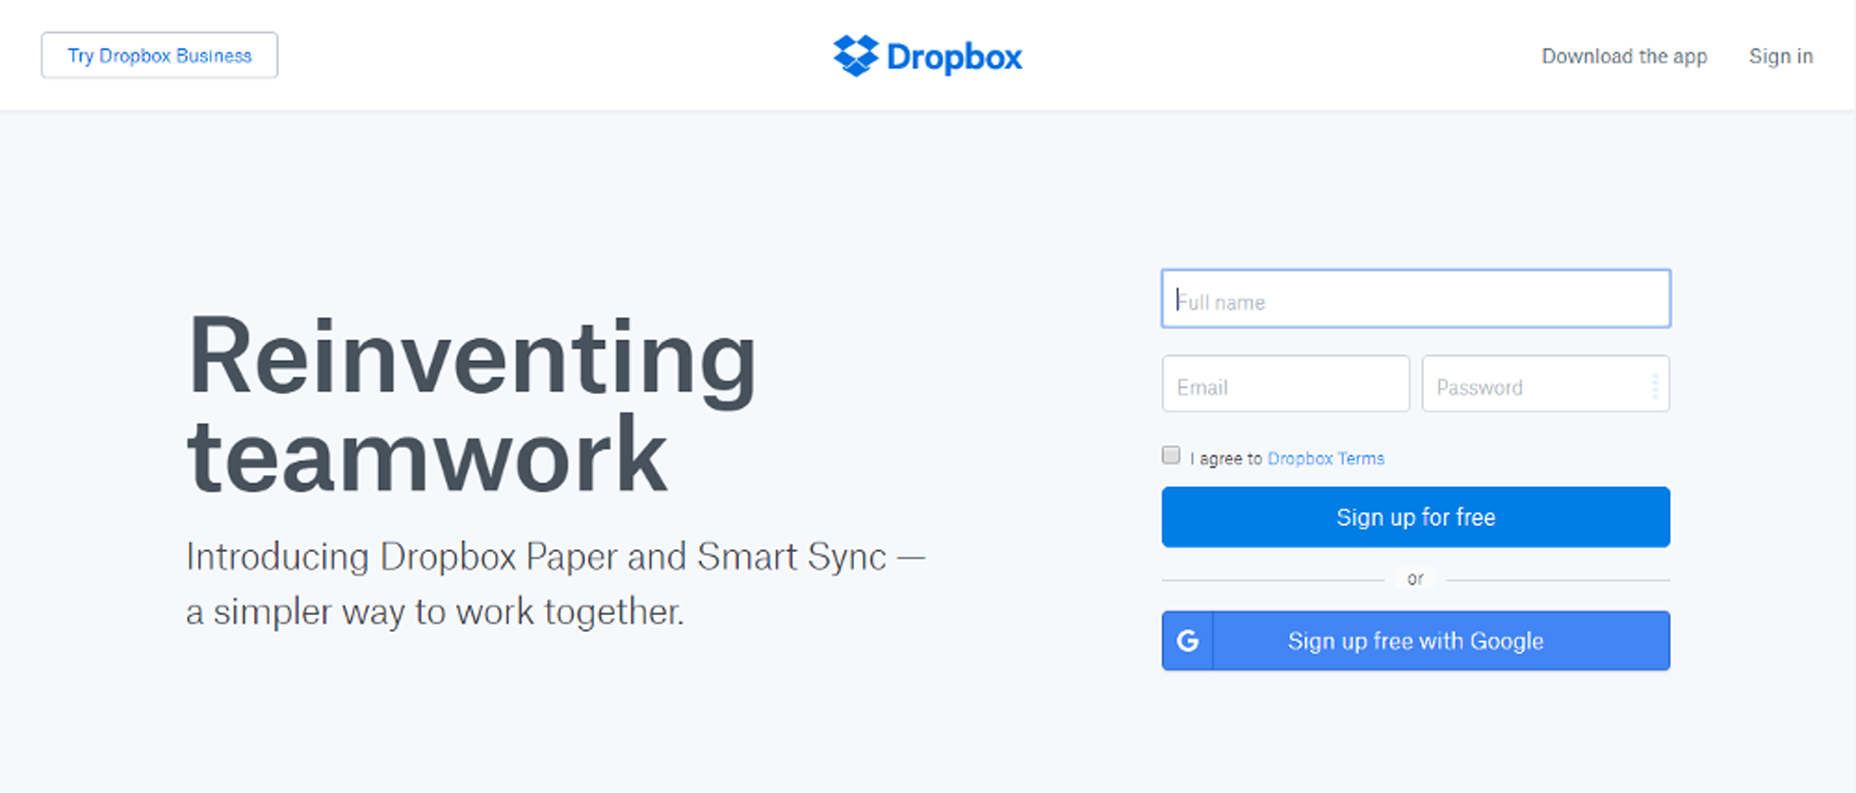 picture of dropbox landing page design